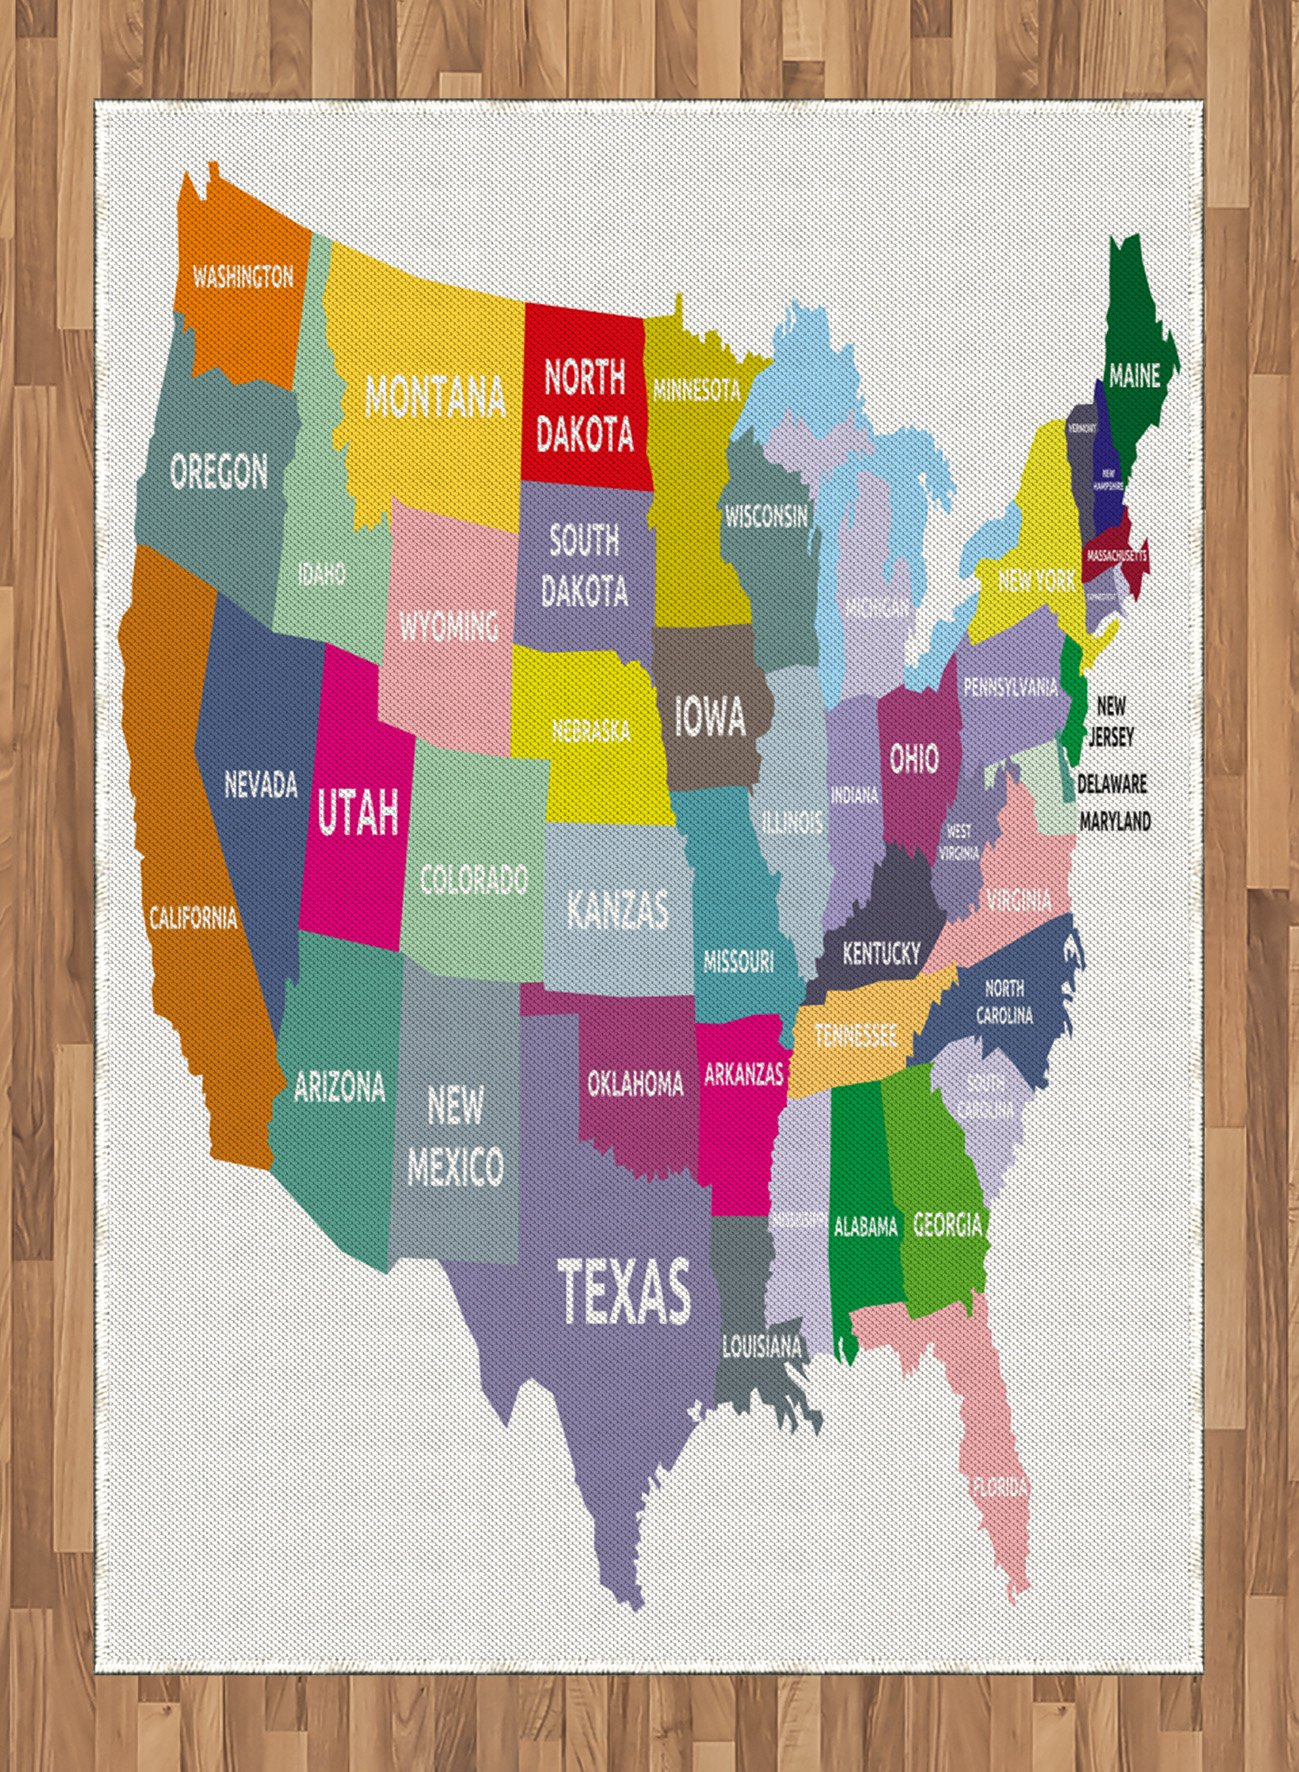 Map Area Rug by Ambesonne, USA Map with Name of States in Different Colors America Geography Cartography Theme, Flat Woven Accent Rug for Living Room Bedroom Dining Room, 5.2 x 7.5 FT, Multicolor by Ambesonne